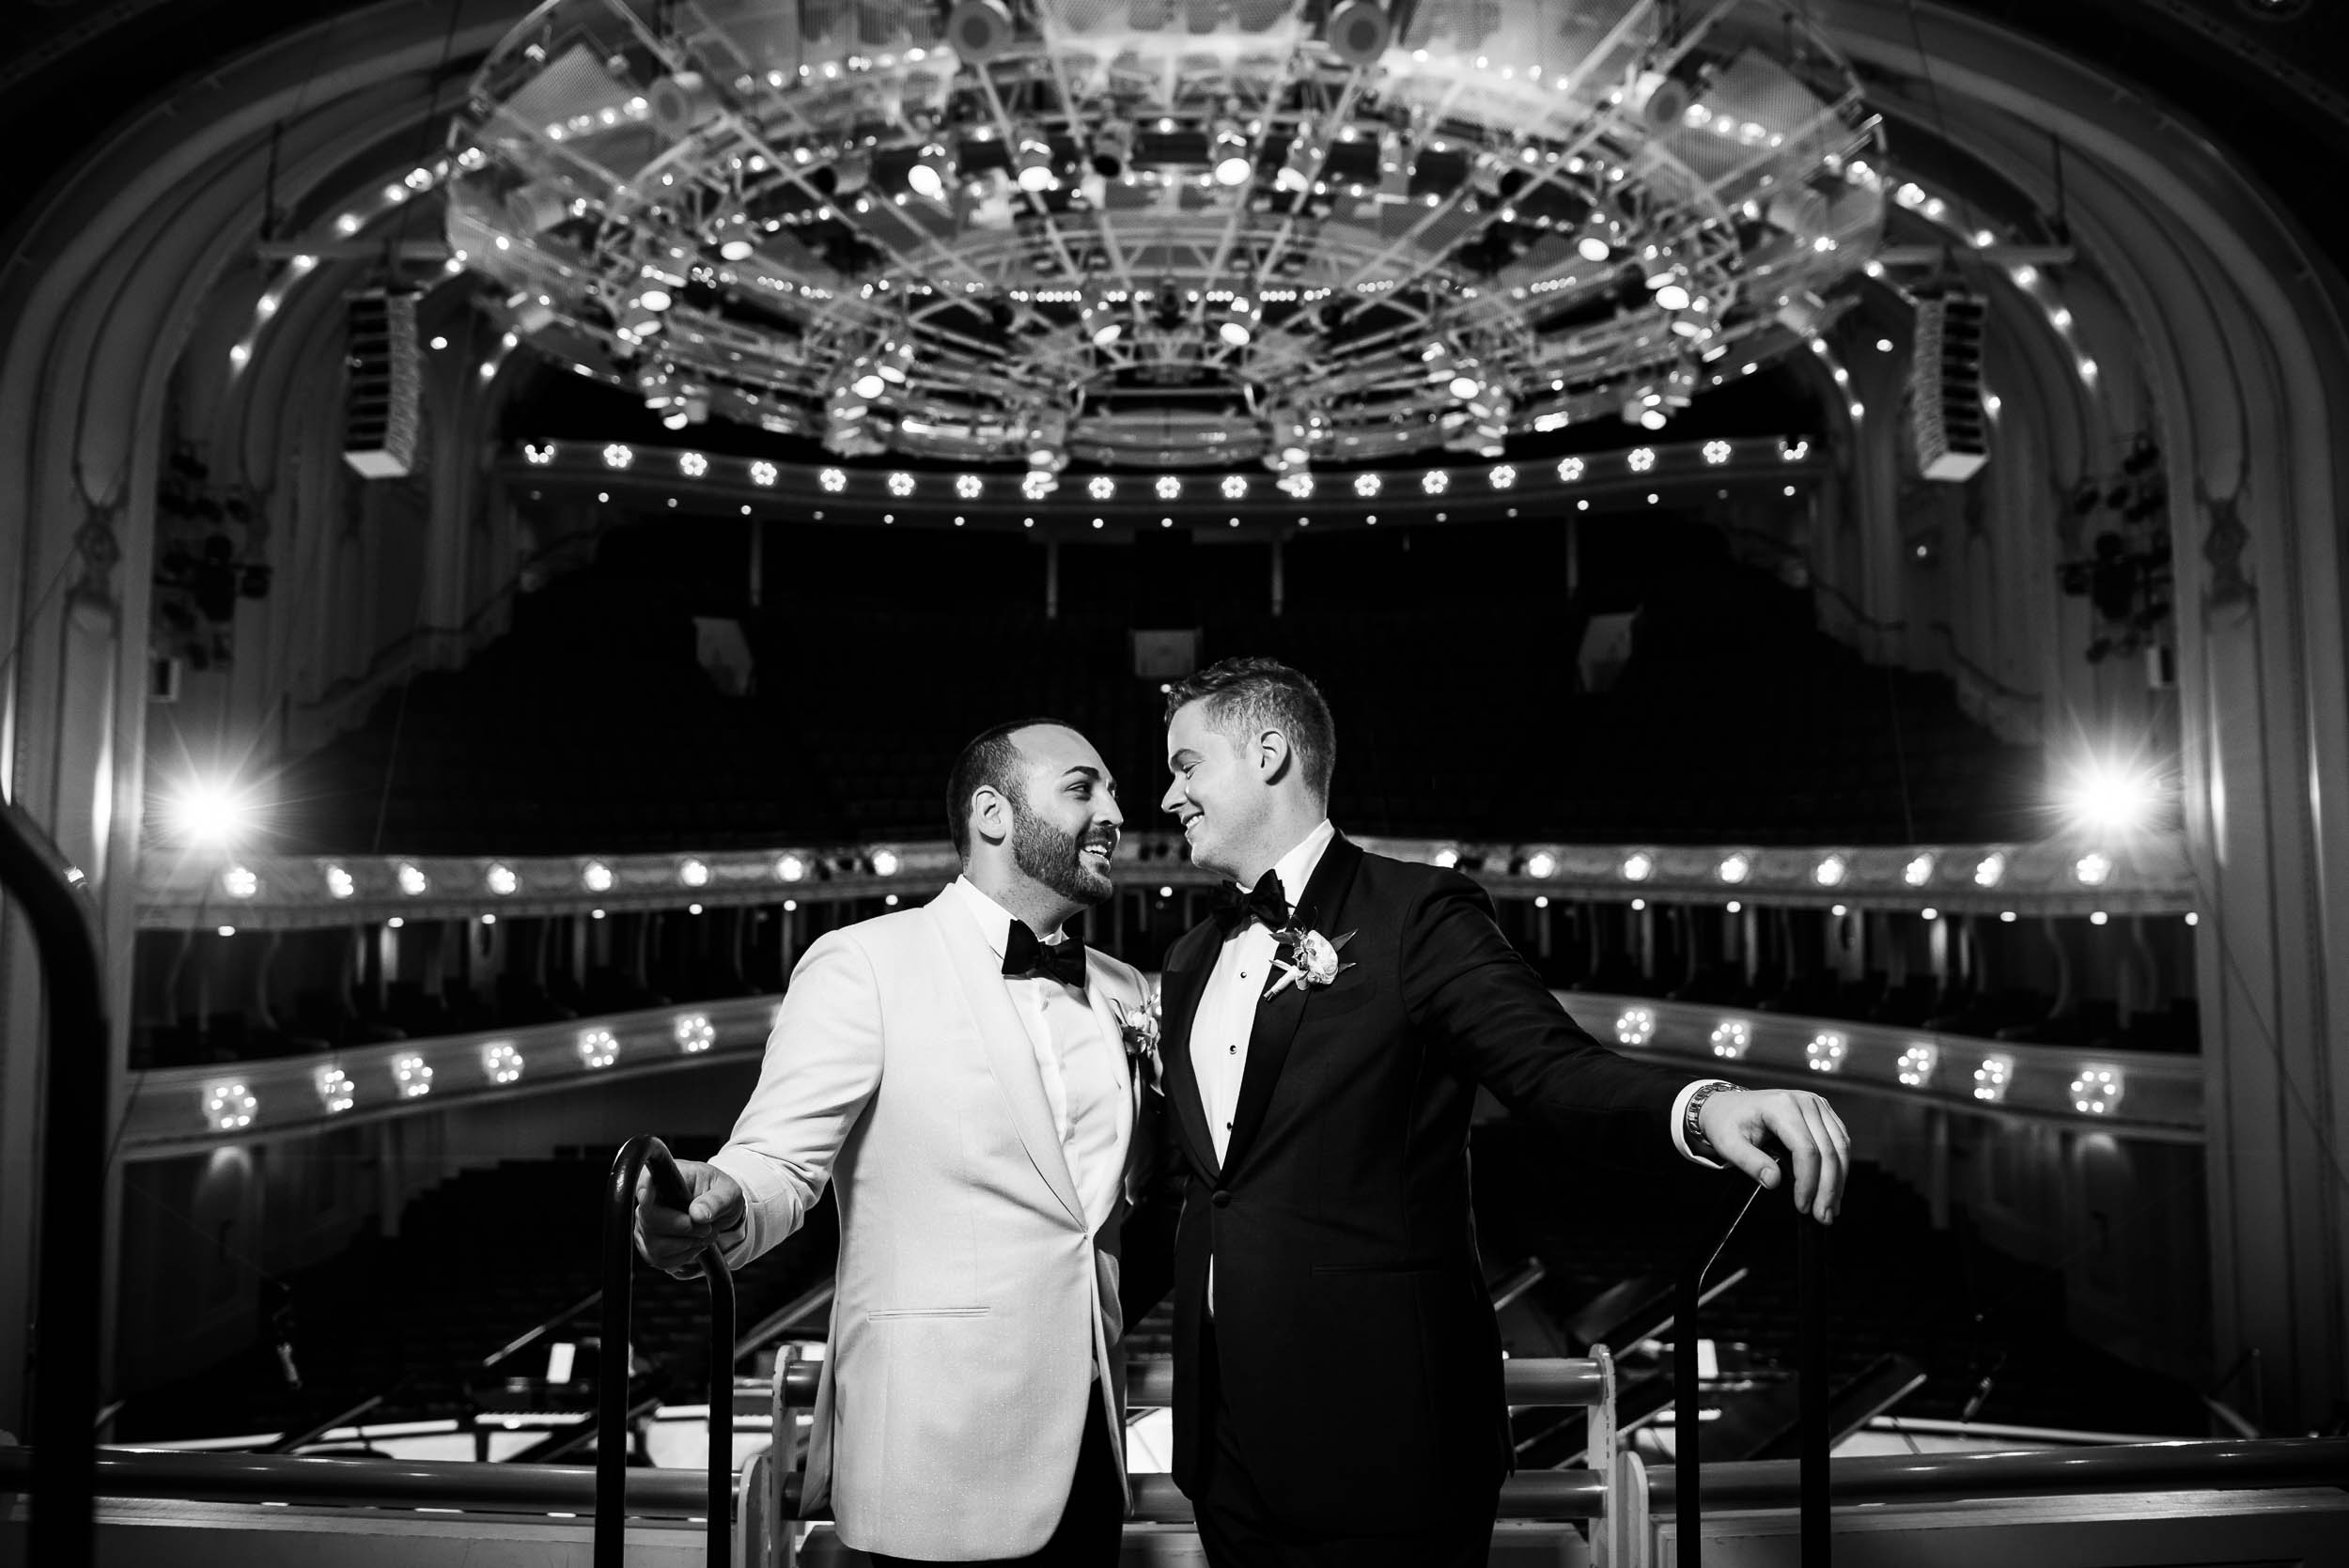 Same-sex, luxurious fall wedding at the Chicago Symphony Center captured by J. Brown Photography. See more wedding ideas at jbrownphotography.com!